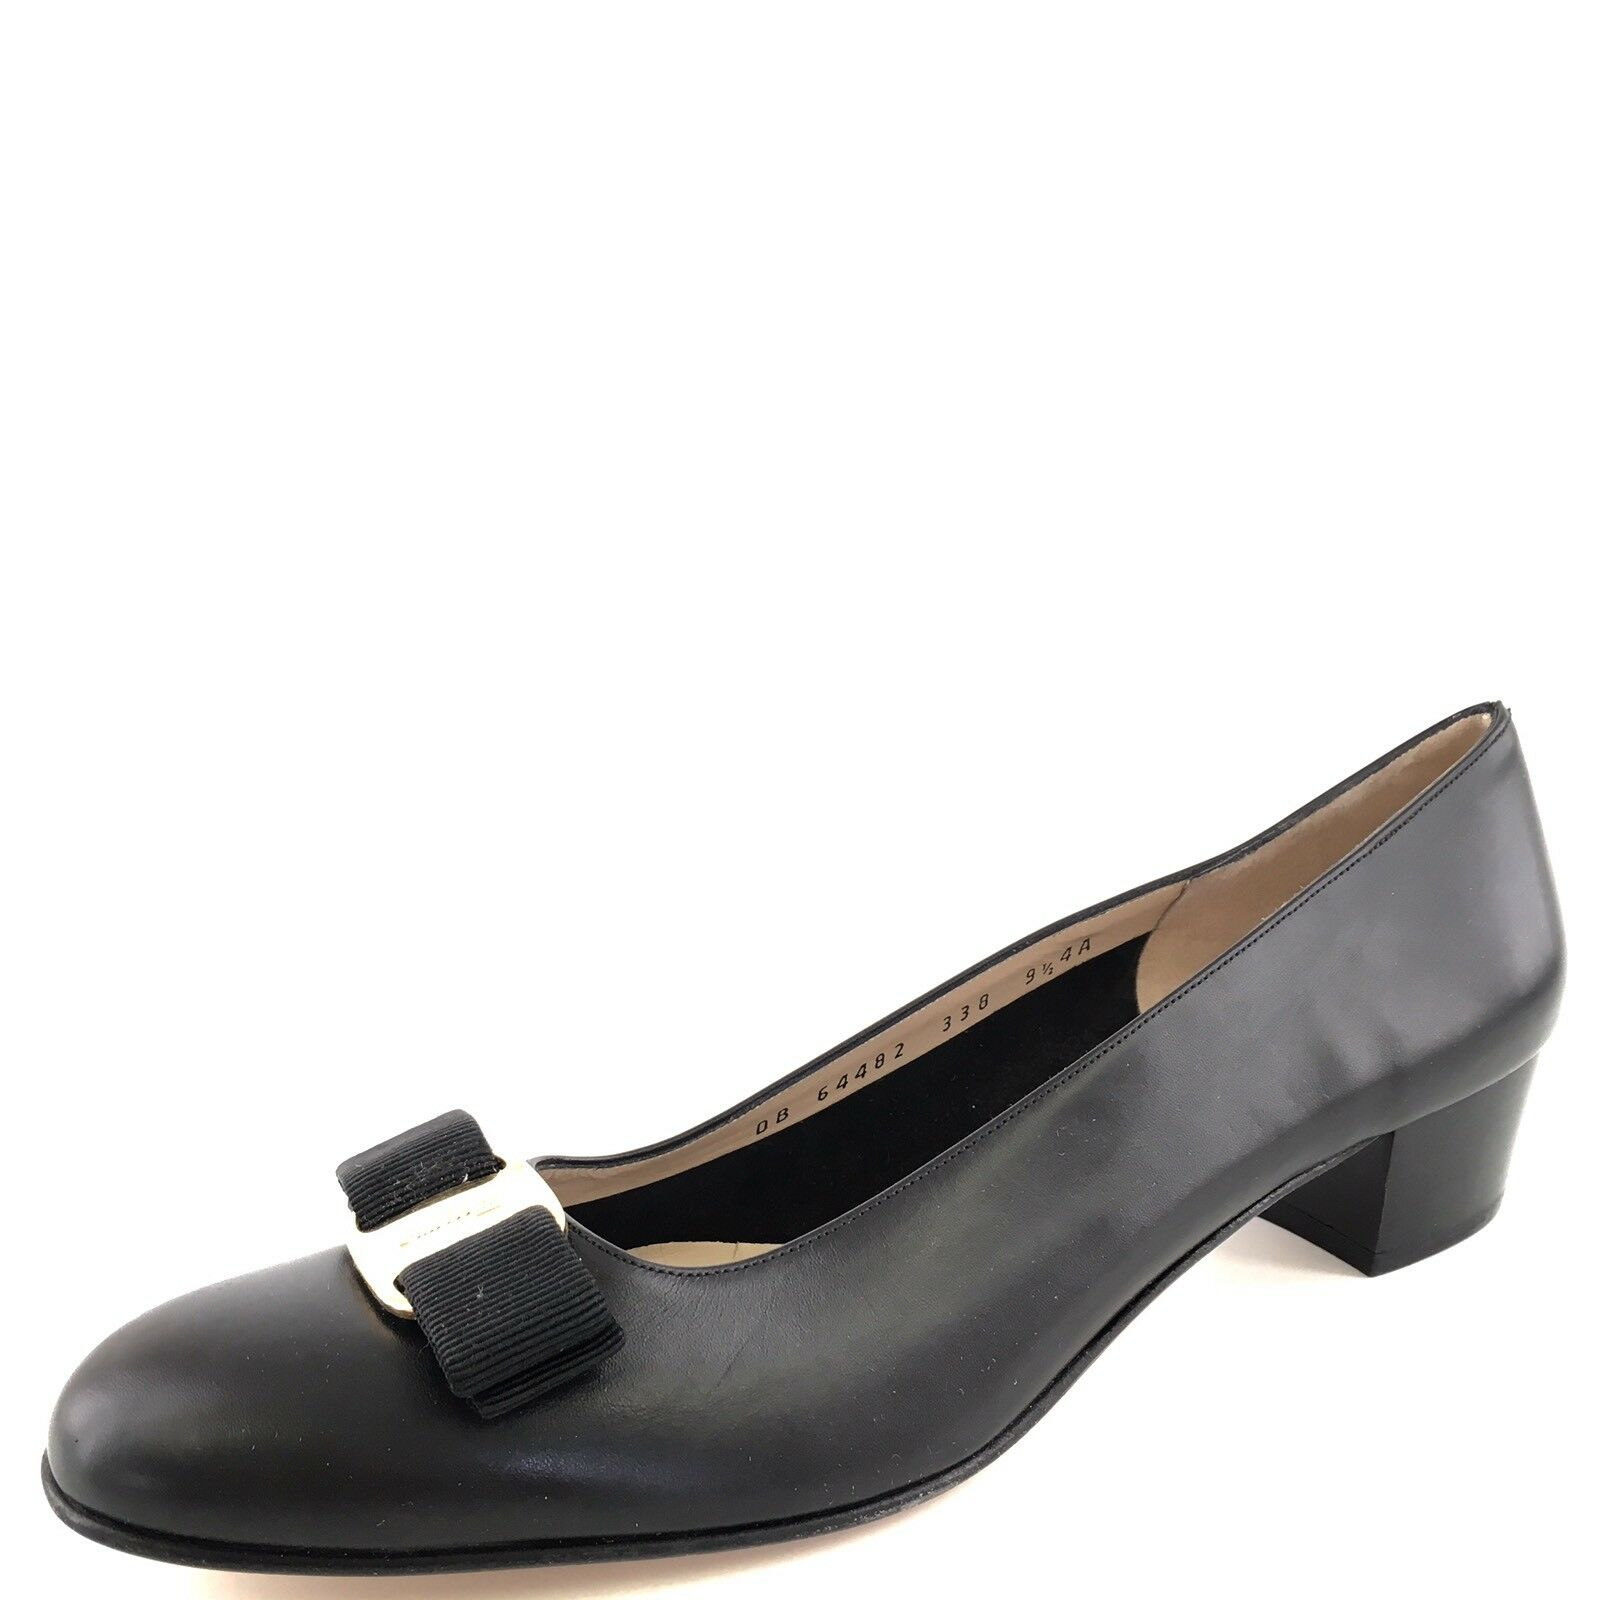 Salvatore Ferragamo Black Leather Bow Low Flats Women's Size 9.5 4A*